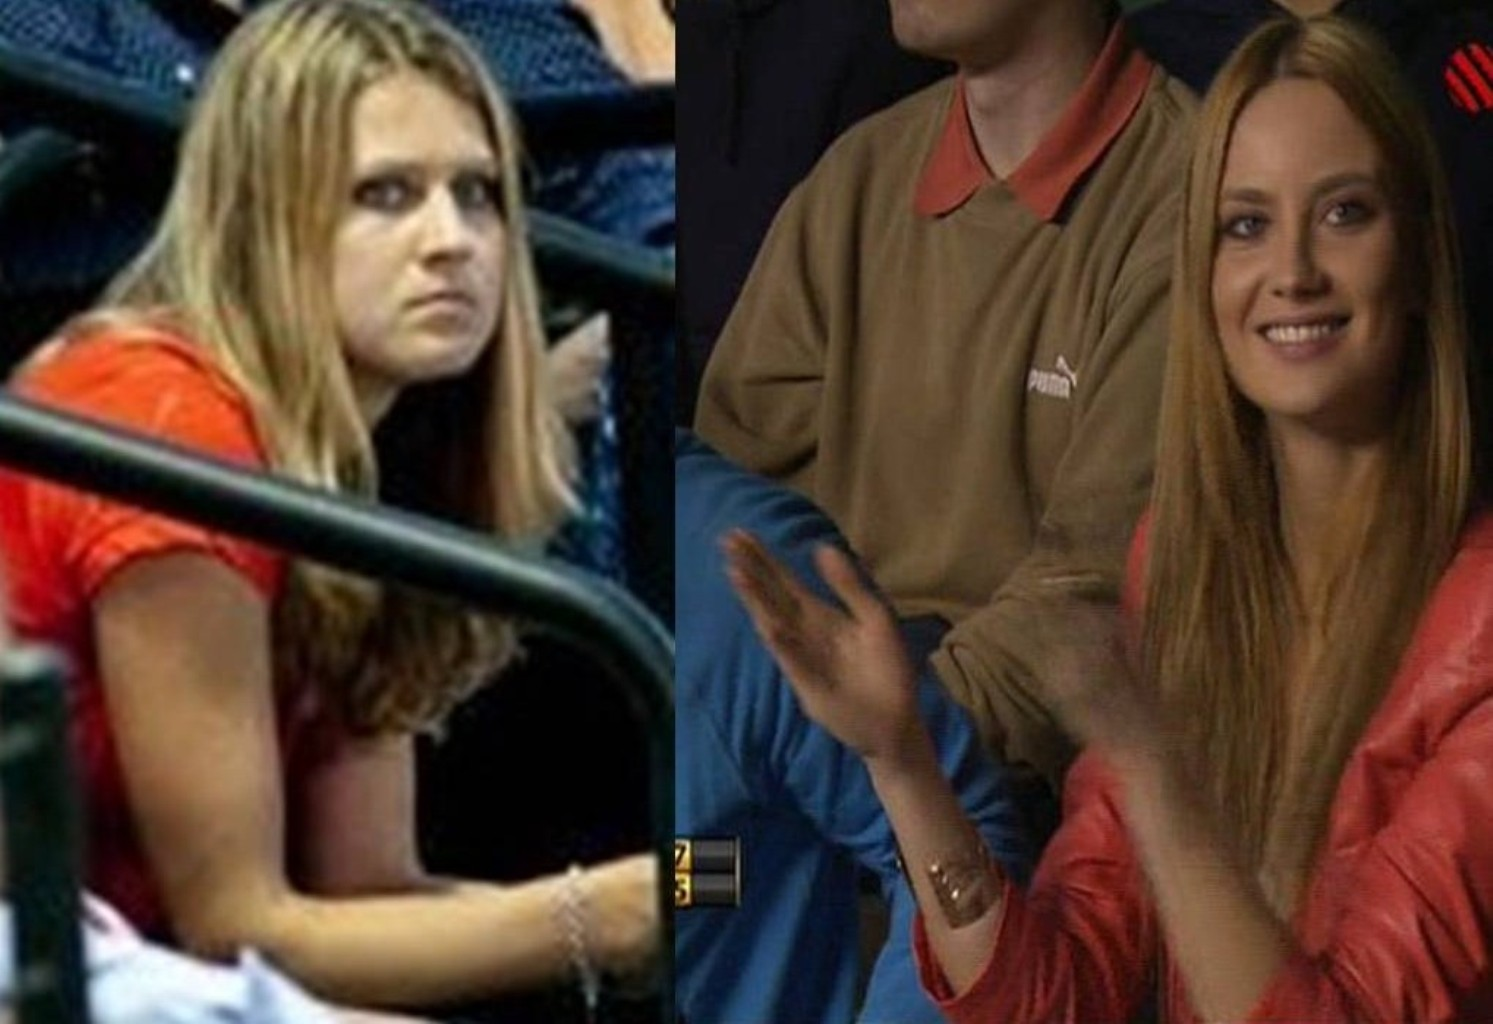 Tomas Berdych Images Lucie Safarova Was Very Little Enthusiastic Fan